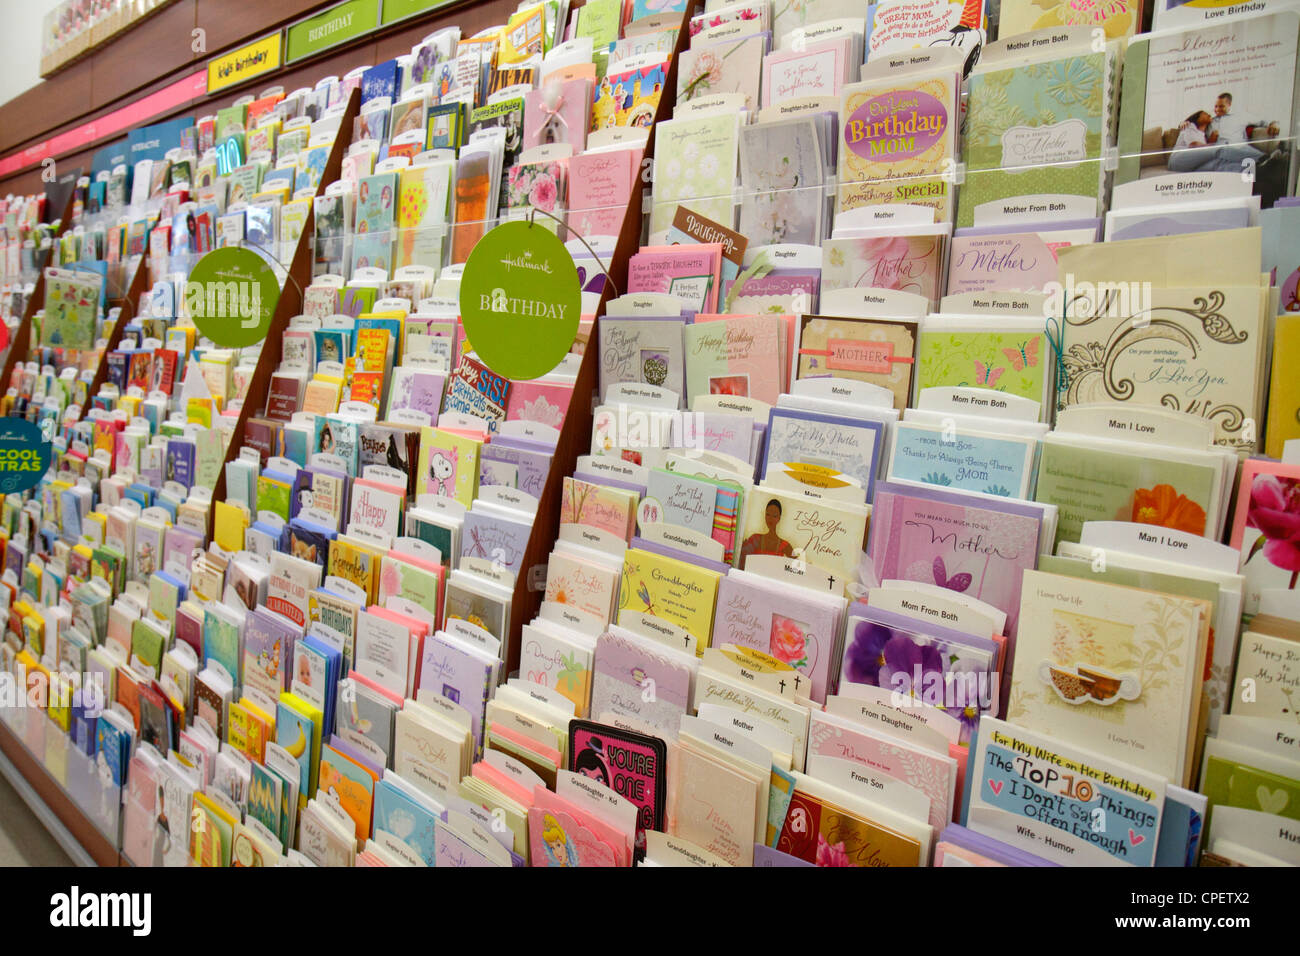 birthday cards display stock photos  birthday cards display stock, Birthday card